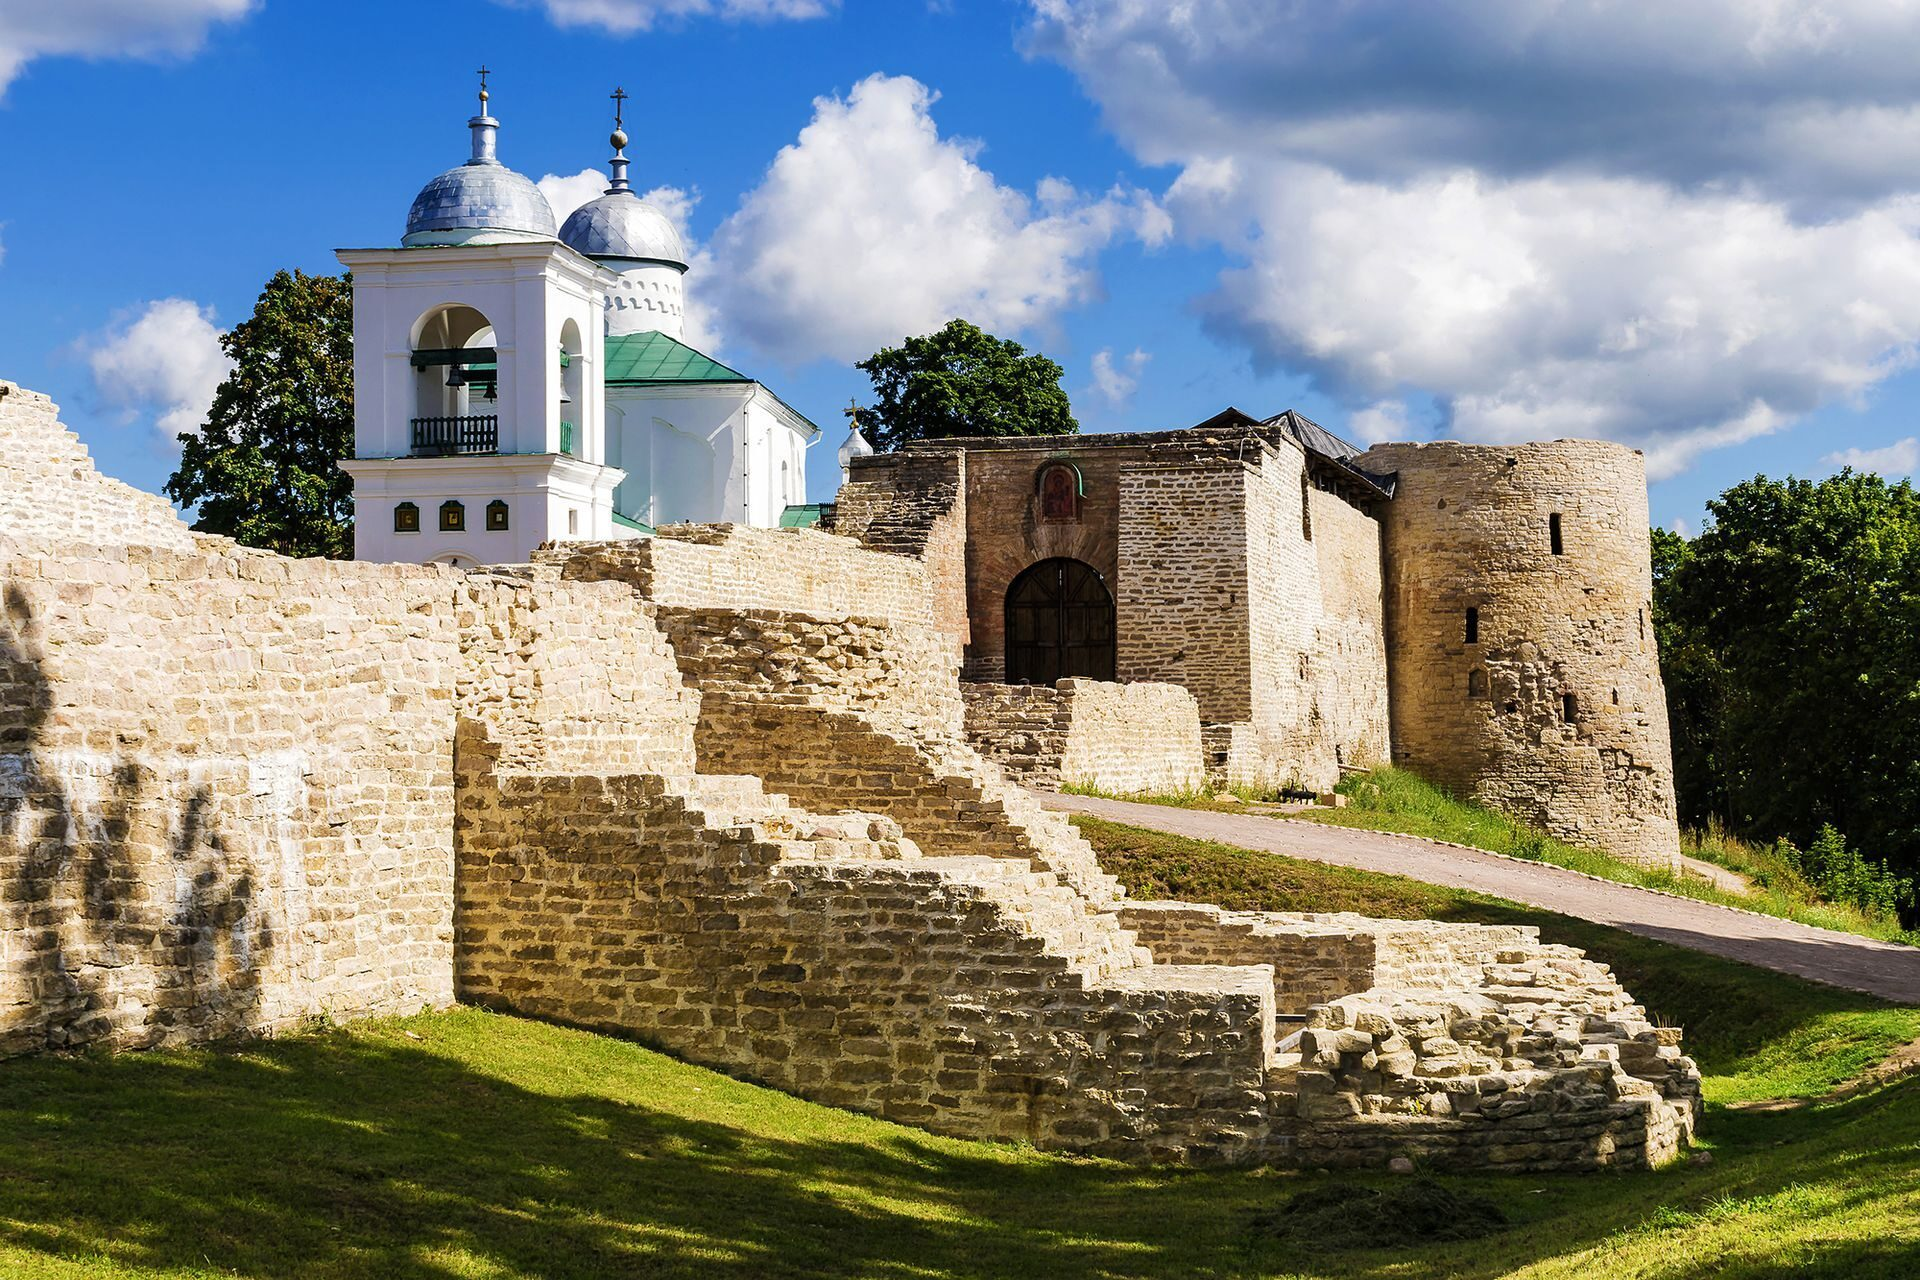 Old walls in Izborsk, Russia